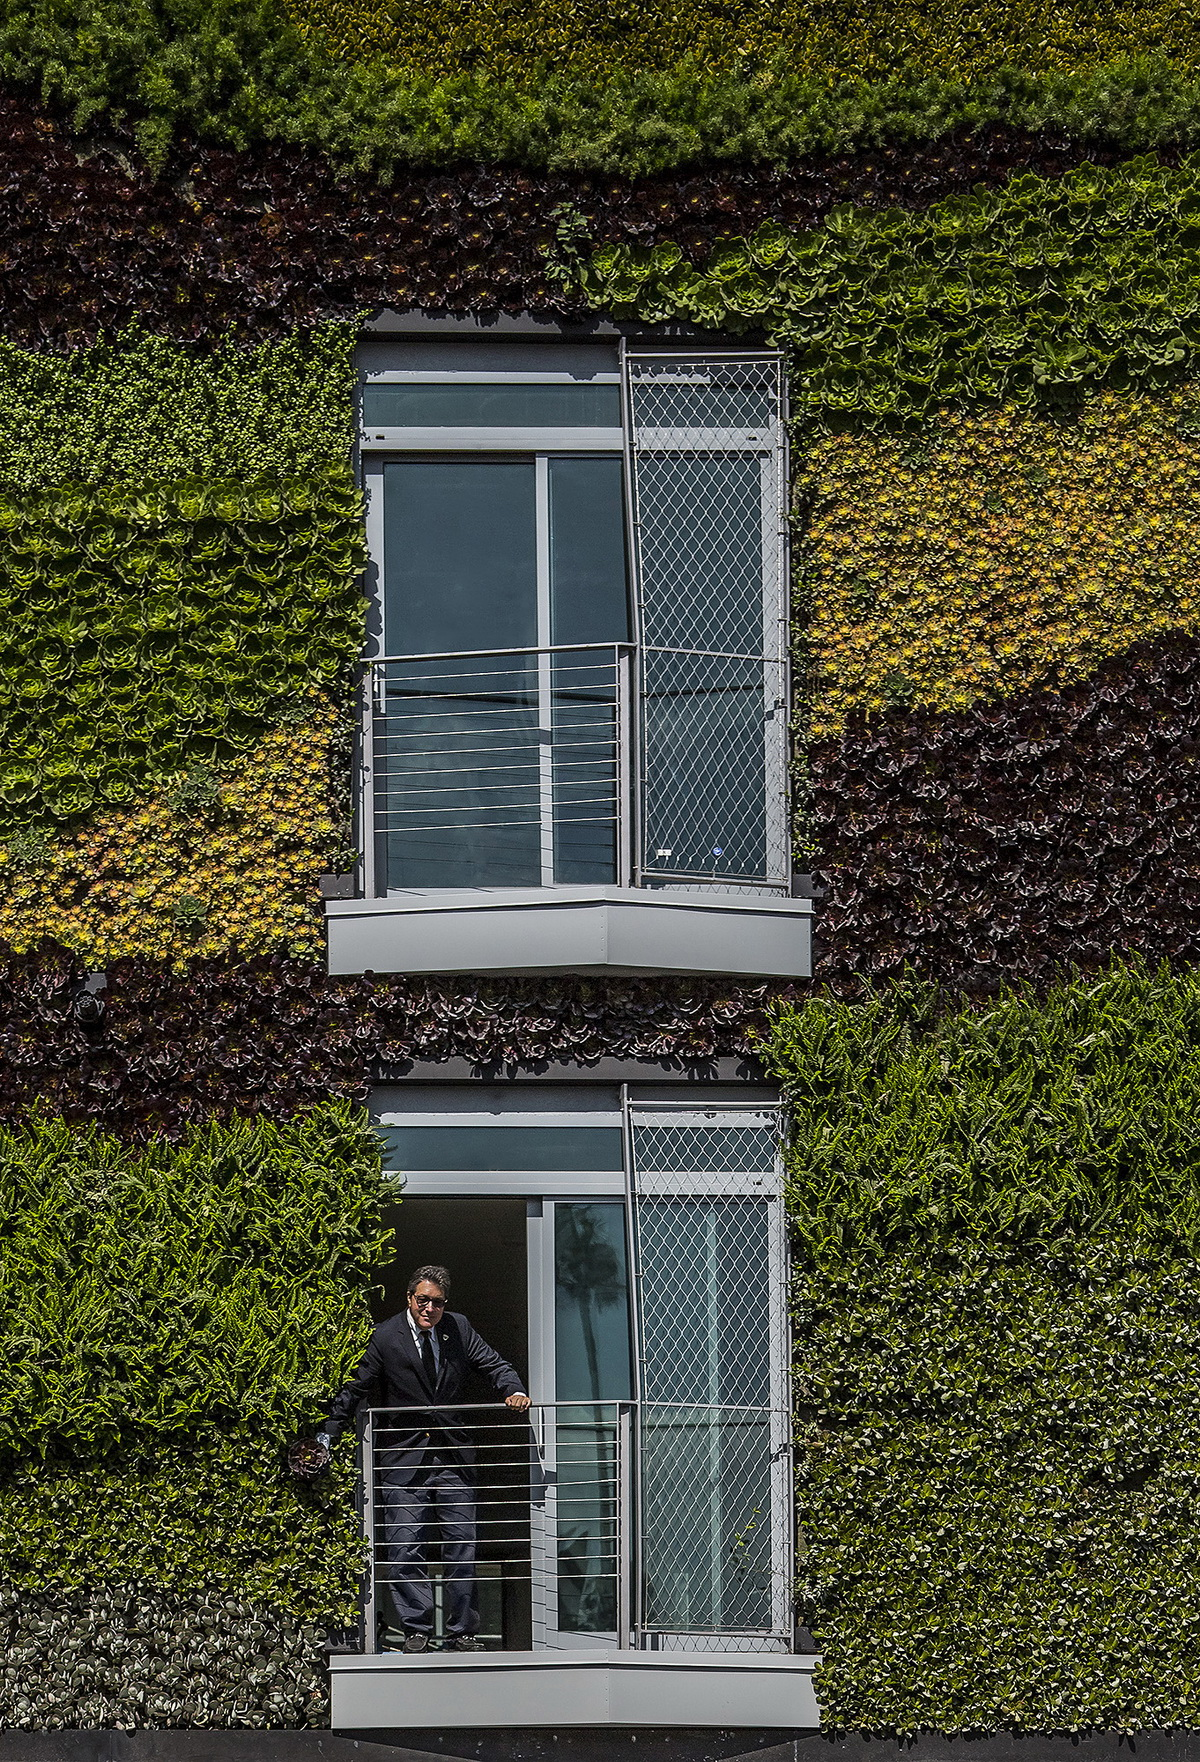 e3 _MAD_Gardenhouse_Green Wall_photo by Manolo Langis_调整大小.jpg